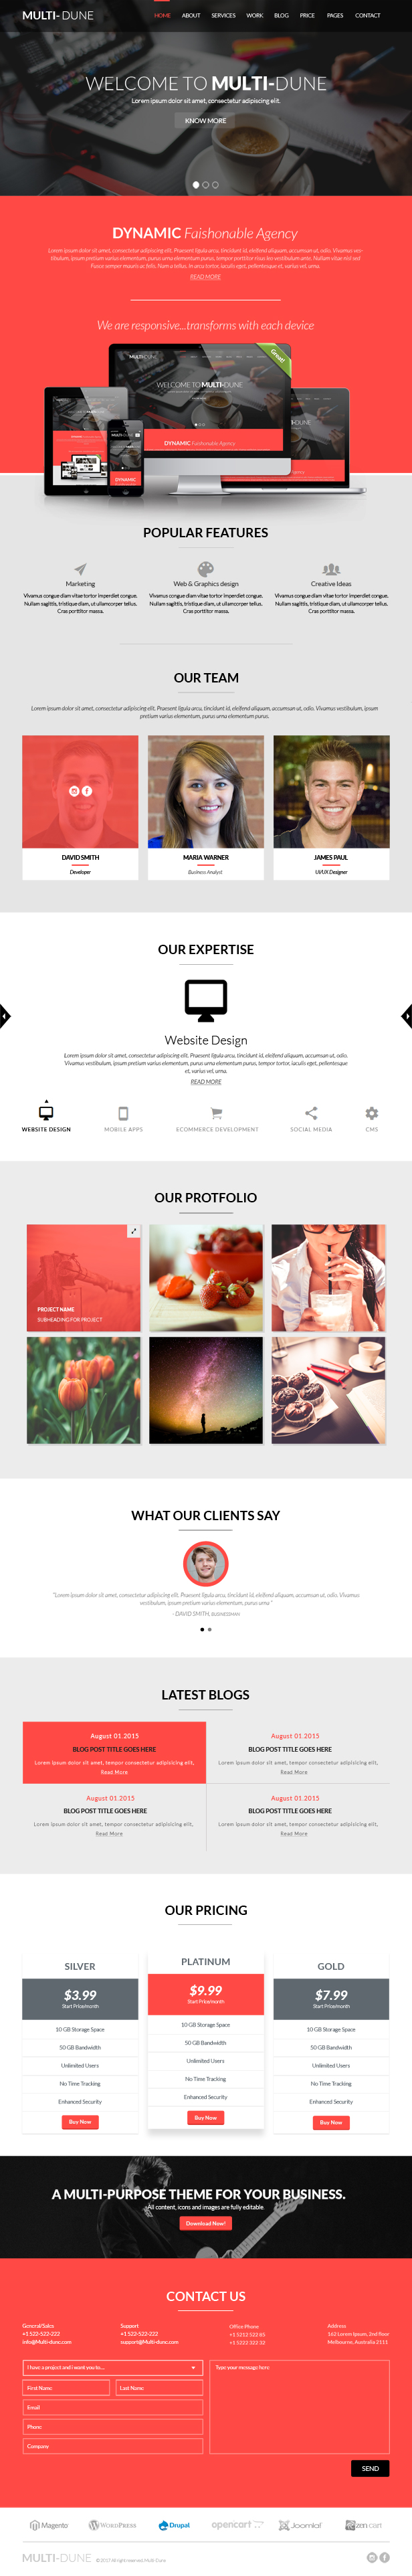 Multi-Dune :: A multipurpose minimal one page responsive html template for all businesses. - 2